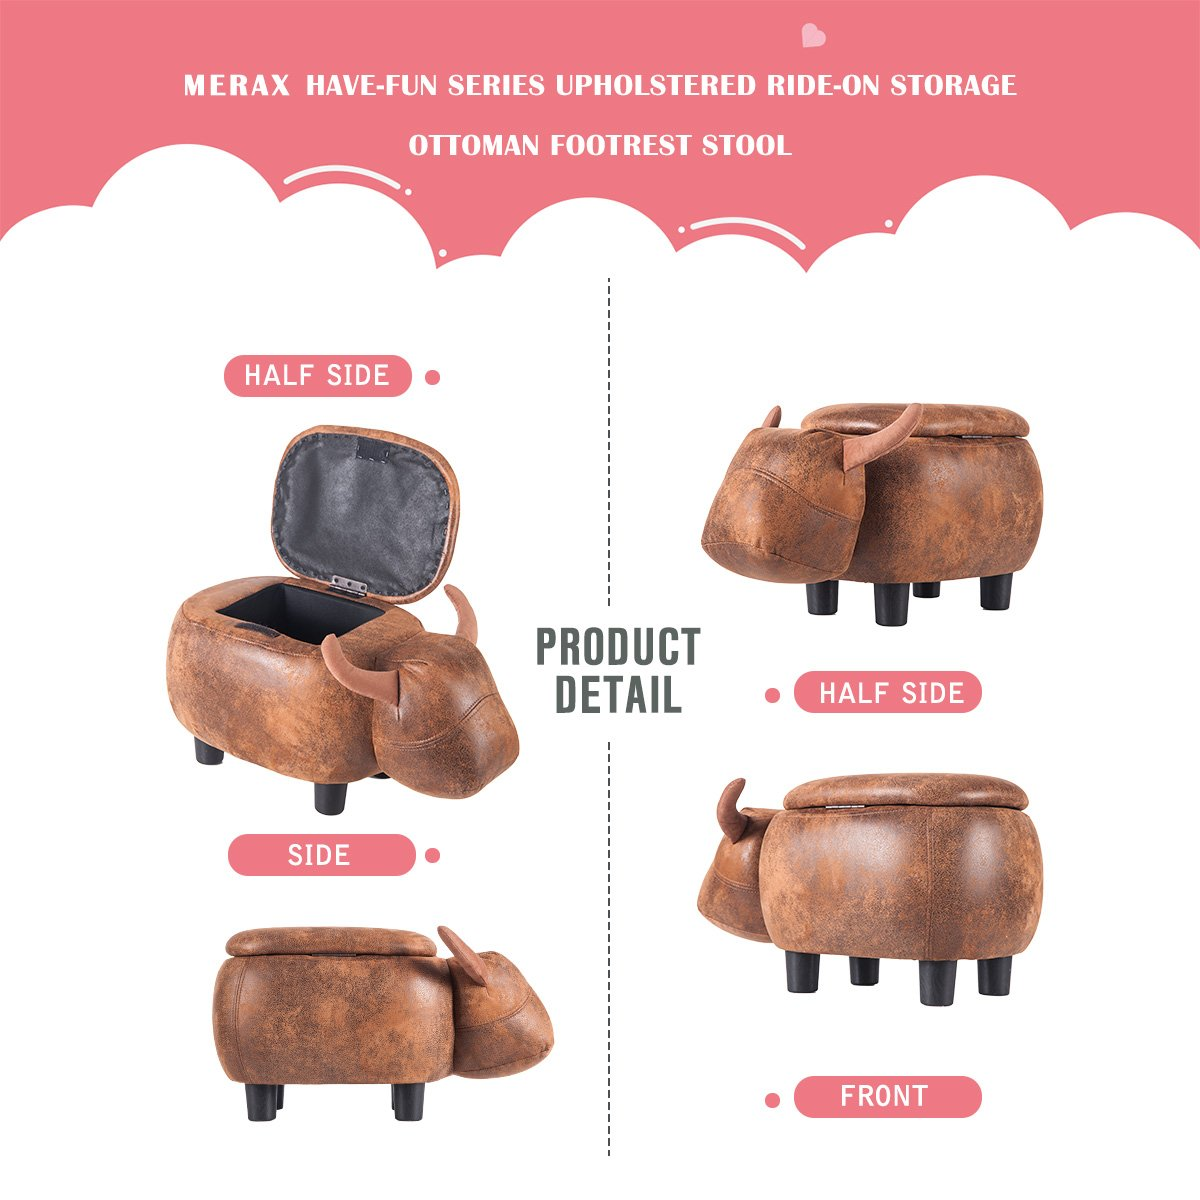 Merax Have-Fun Series Upholstered Ride-on Storage Ottoman Footrest Stool with Vivid Adorable Animal Shape (Brown Buffalo) by Merax (Image #3)